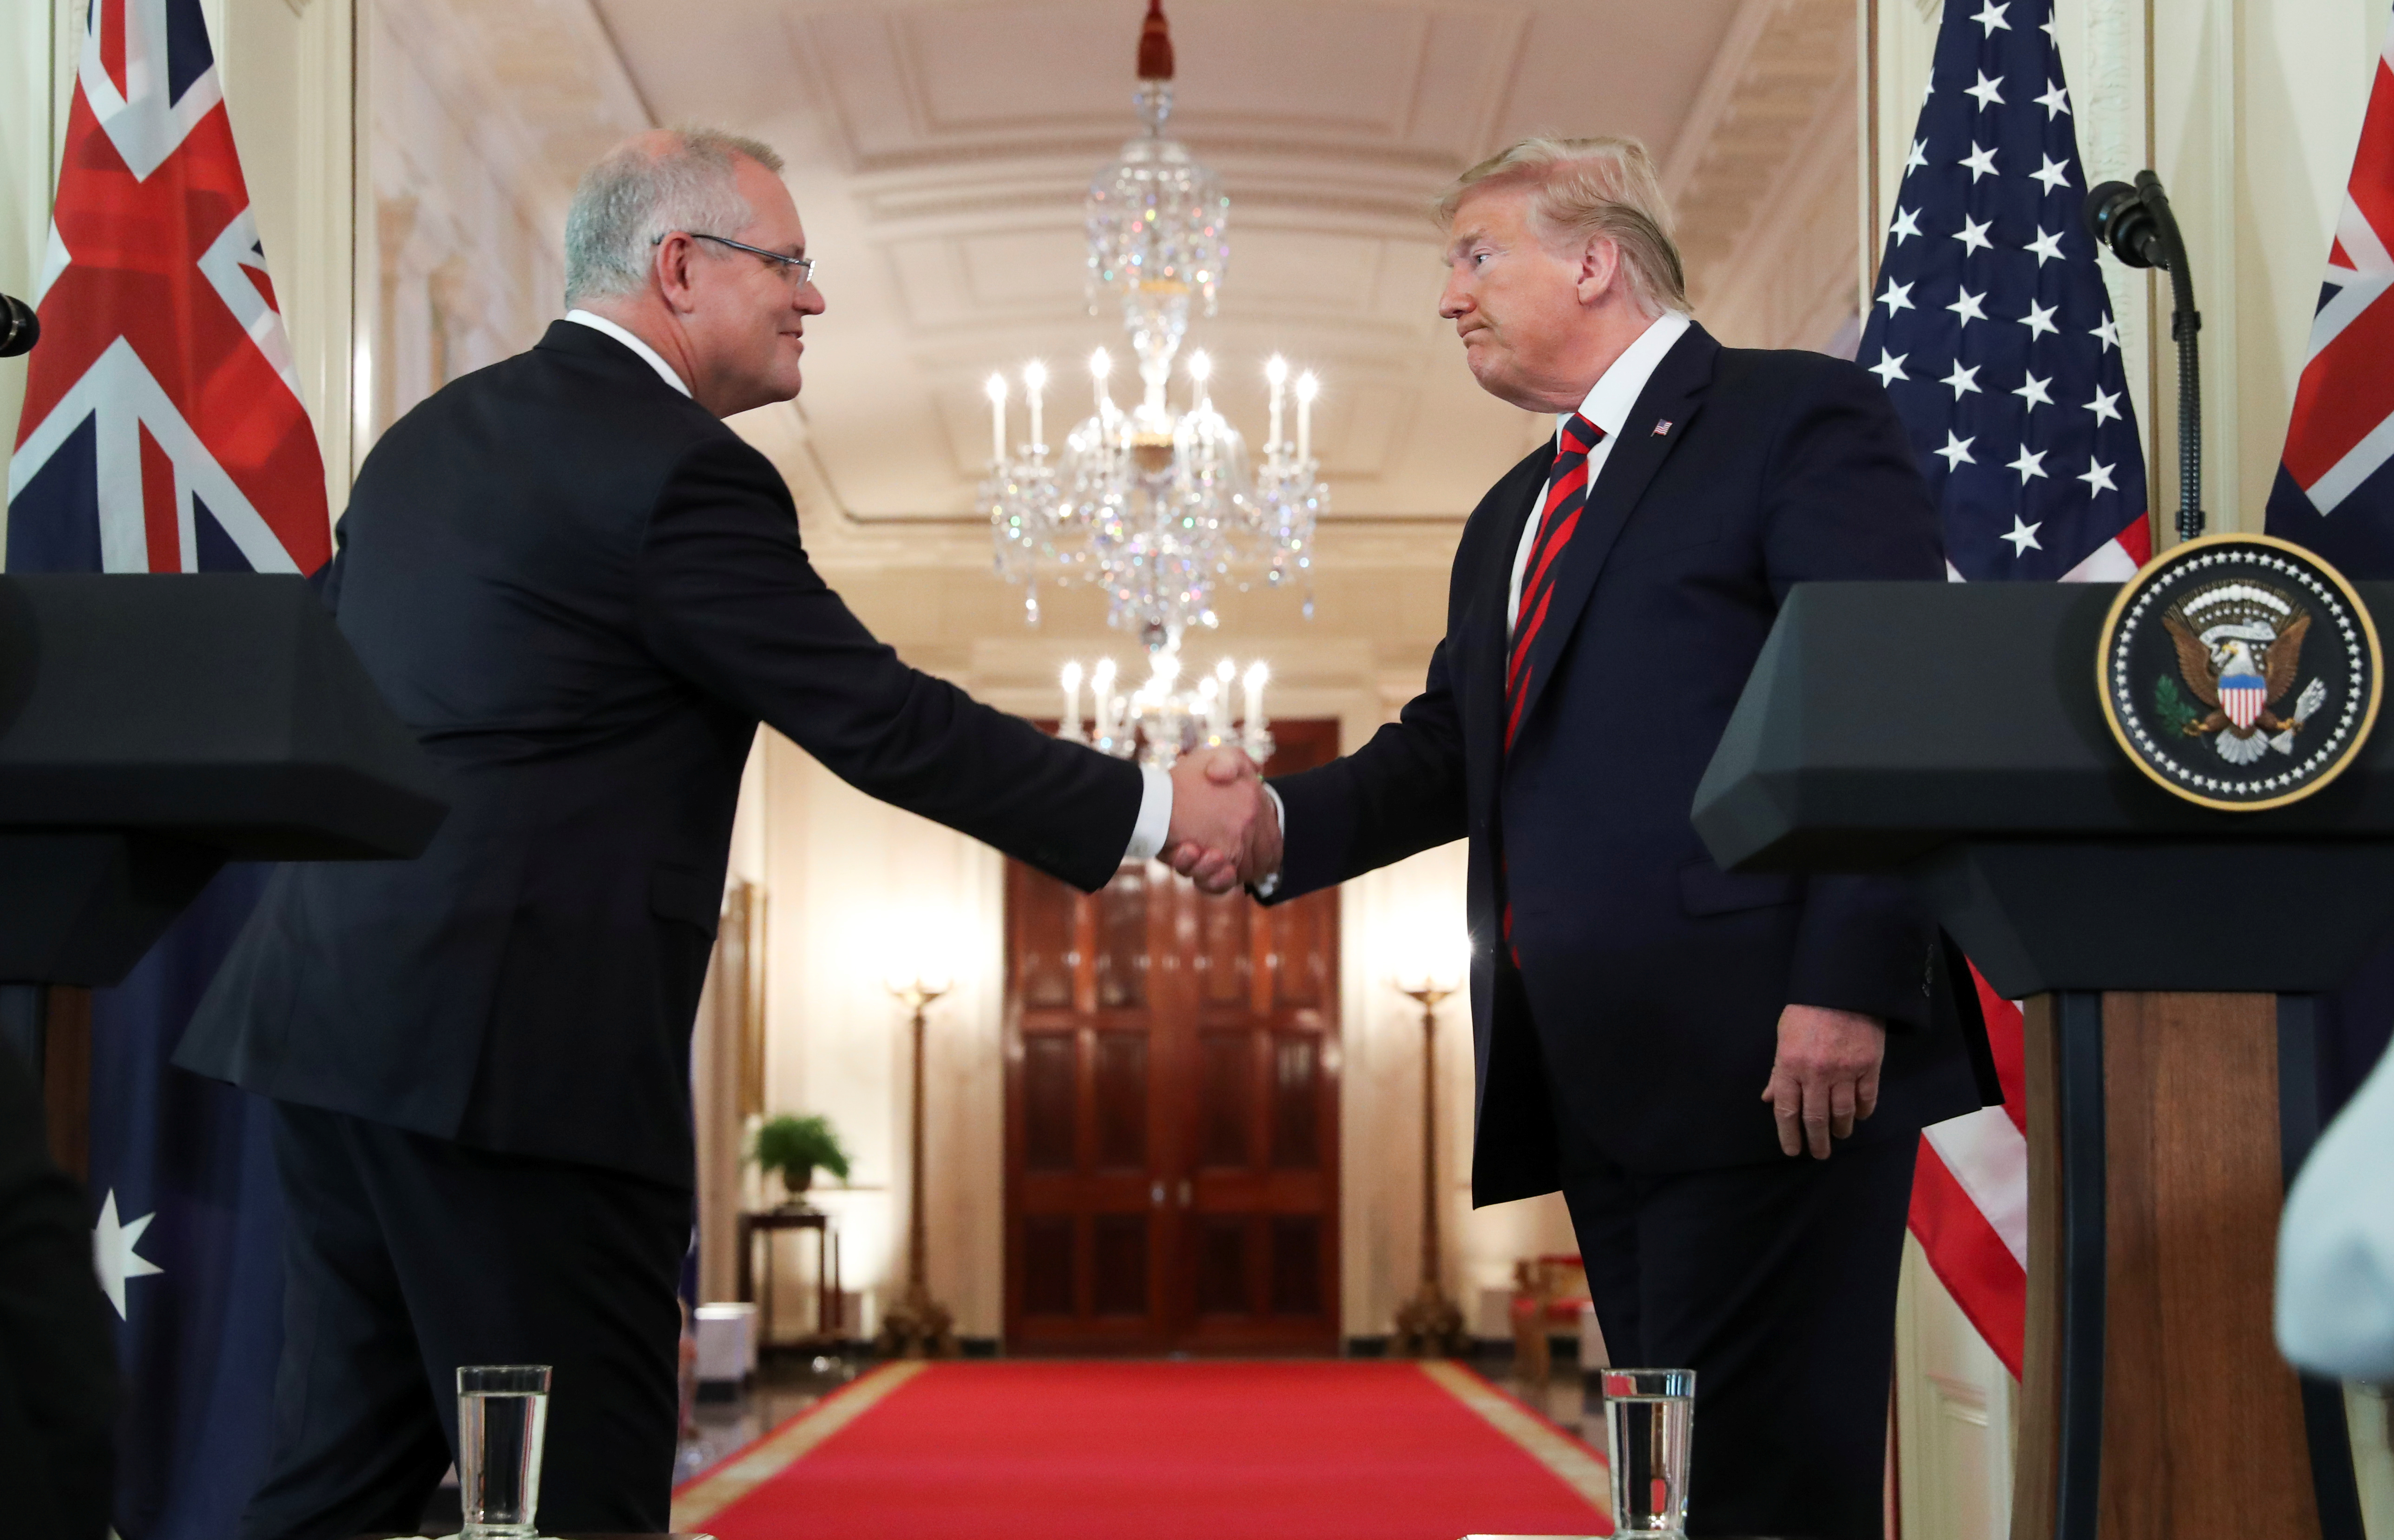 Australian PM Says All Nations to Benefit From a Fair US-China Trade Deal